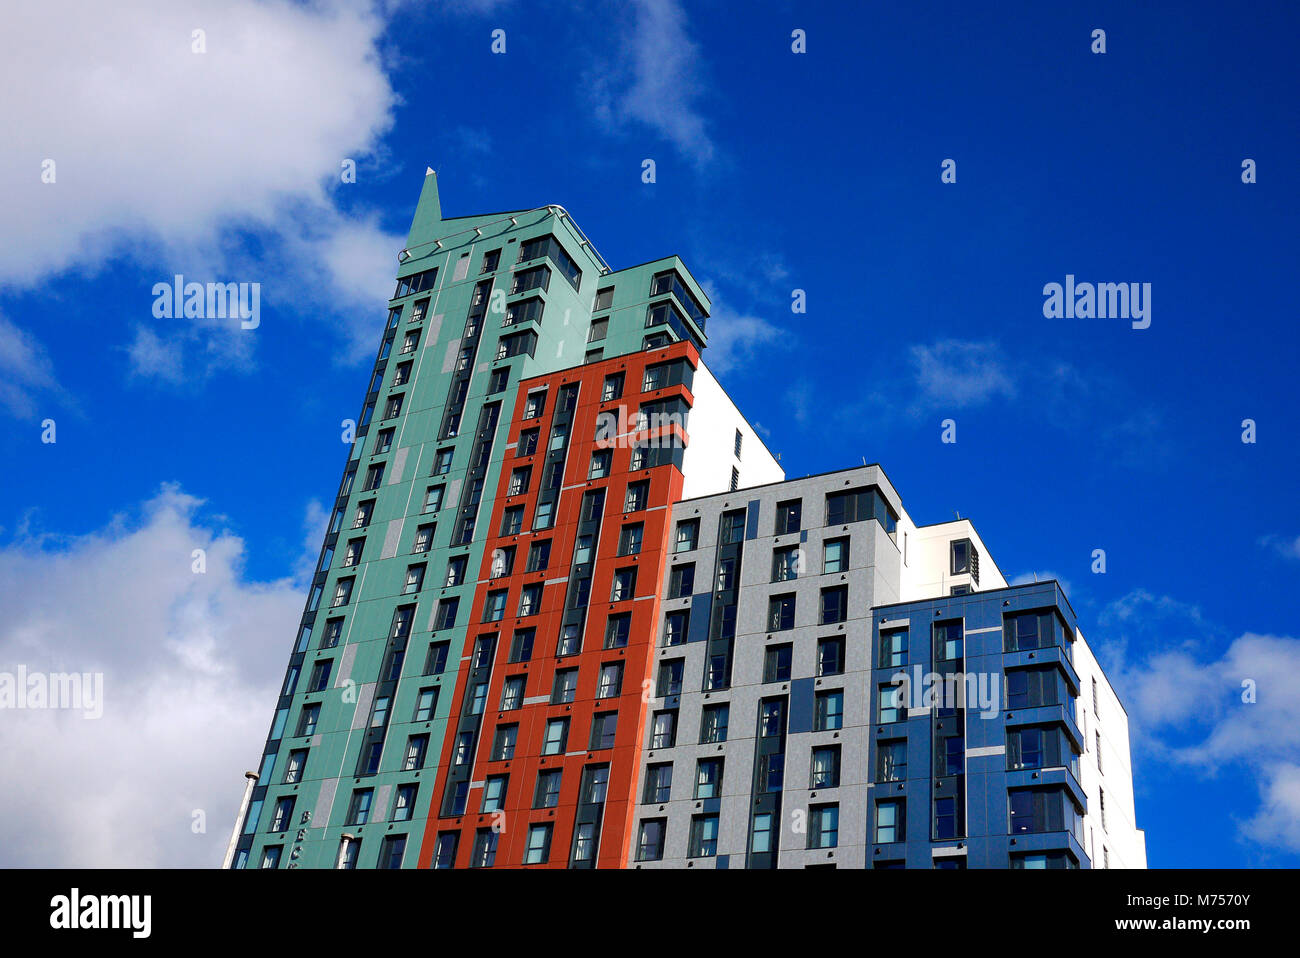 The newly-constructed Beckley Point student accomodation in Plymouth, Devon, UK. - Stock Image